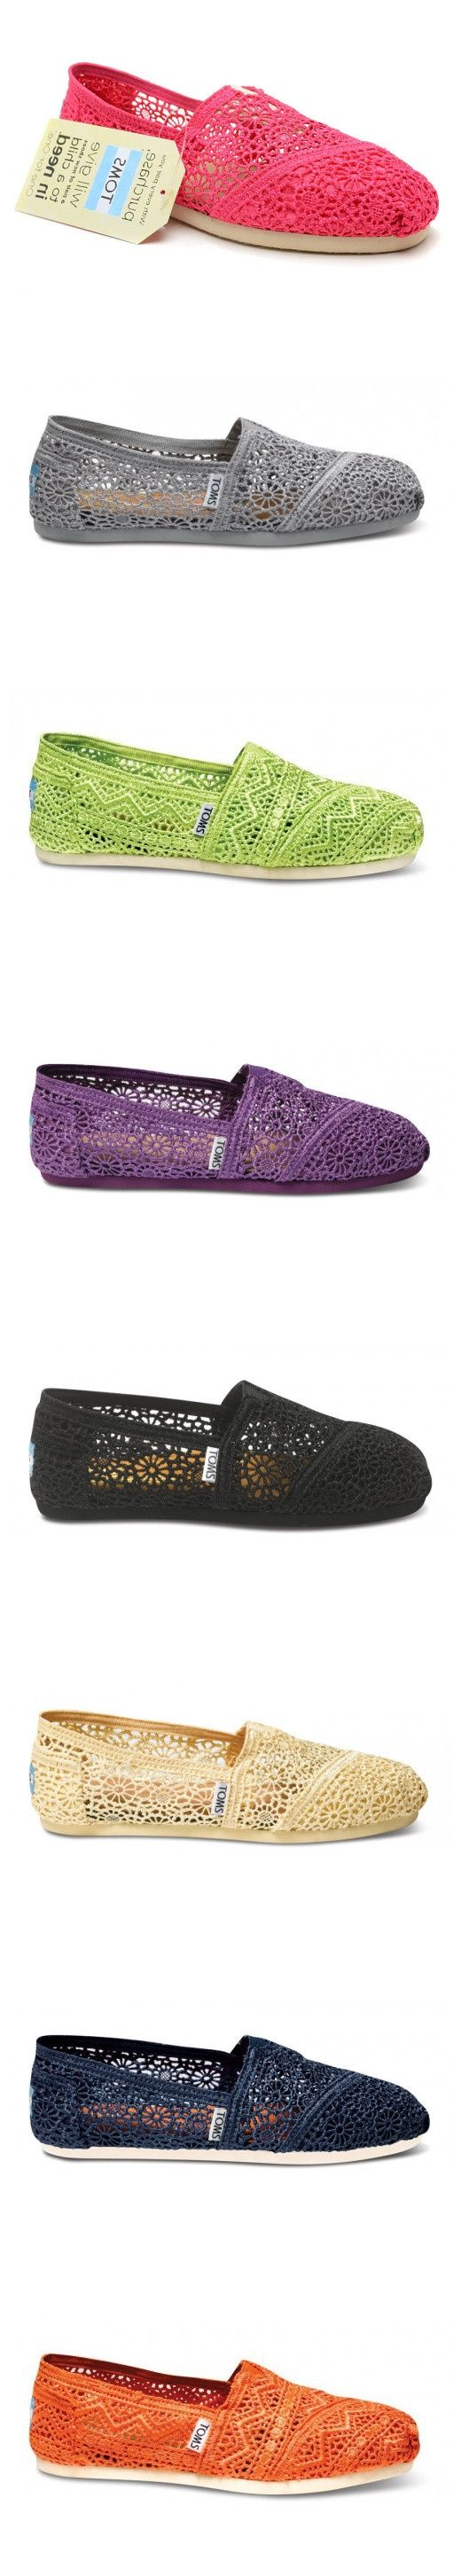 Dream closet Toms Outlet! $26.99 Holy cow.